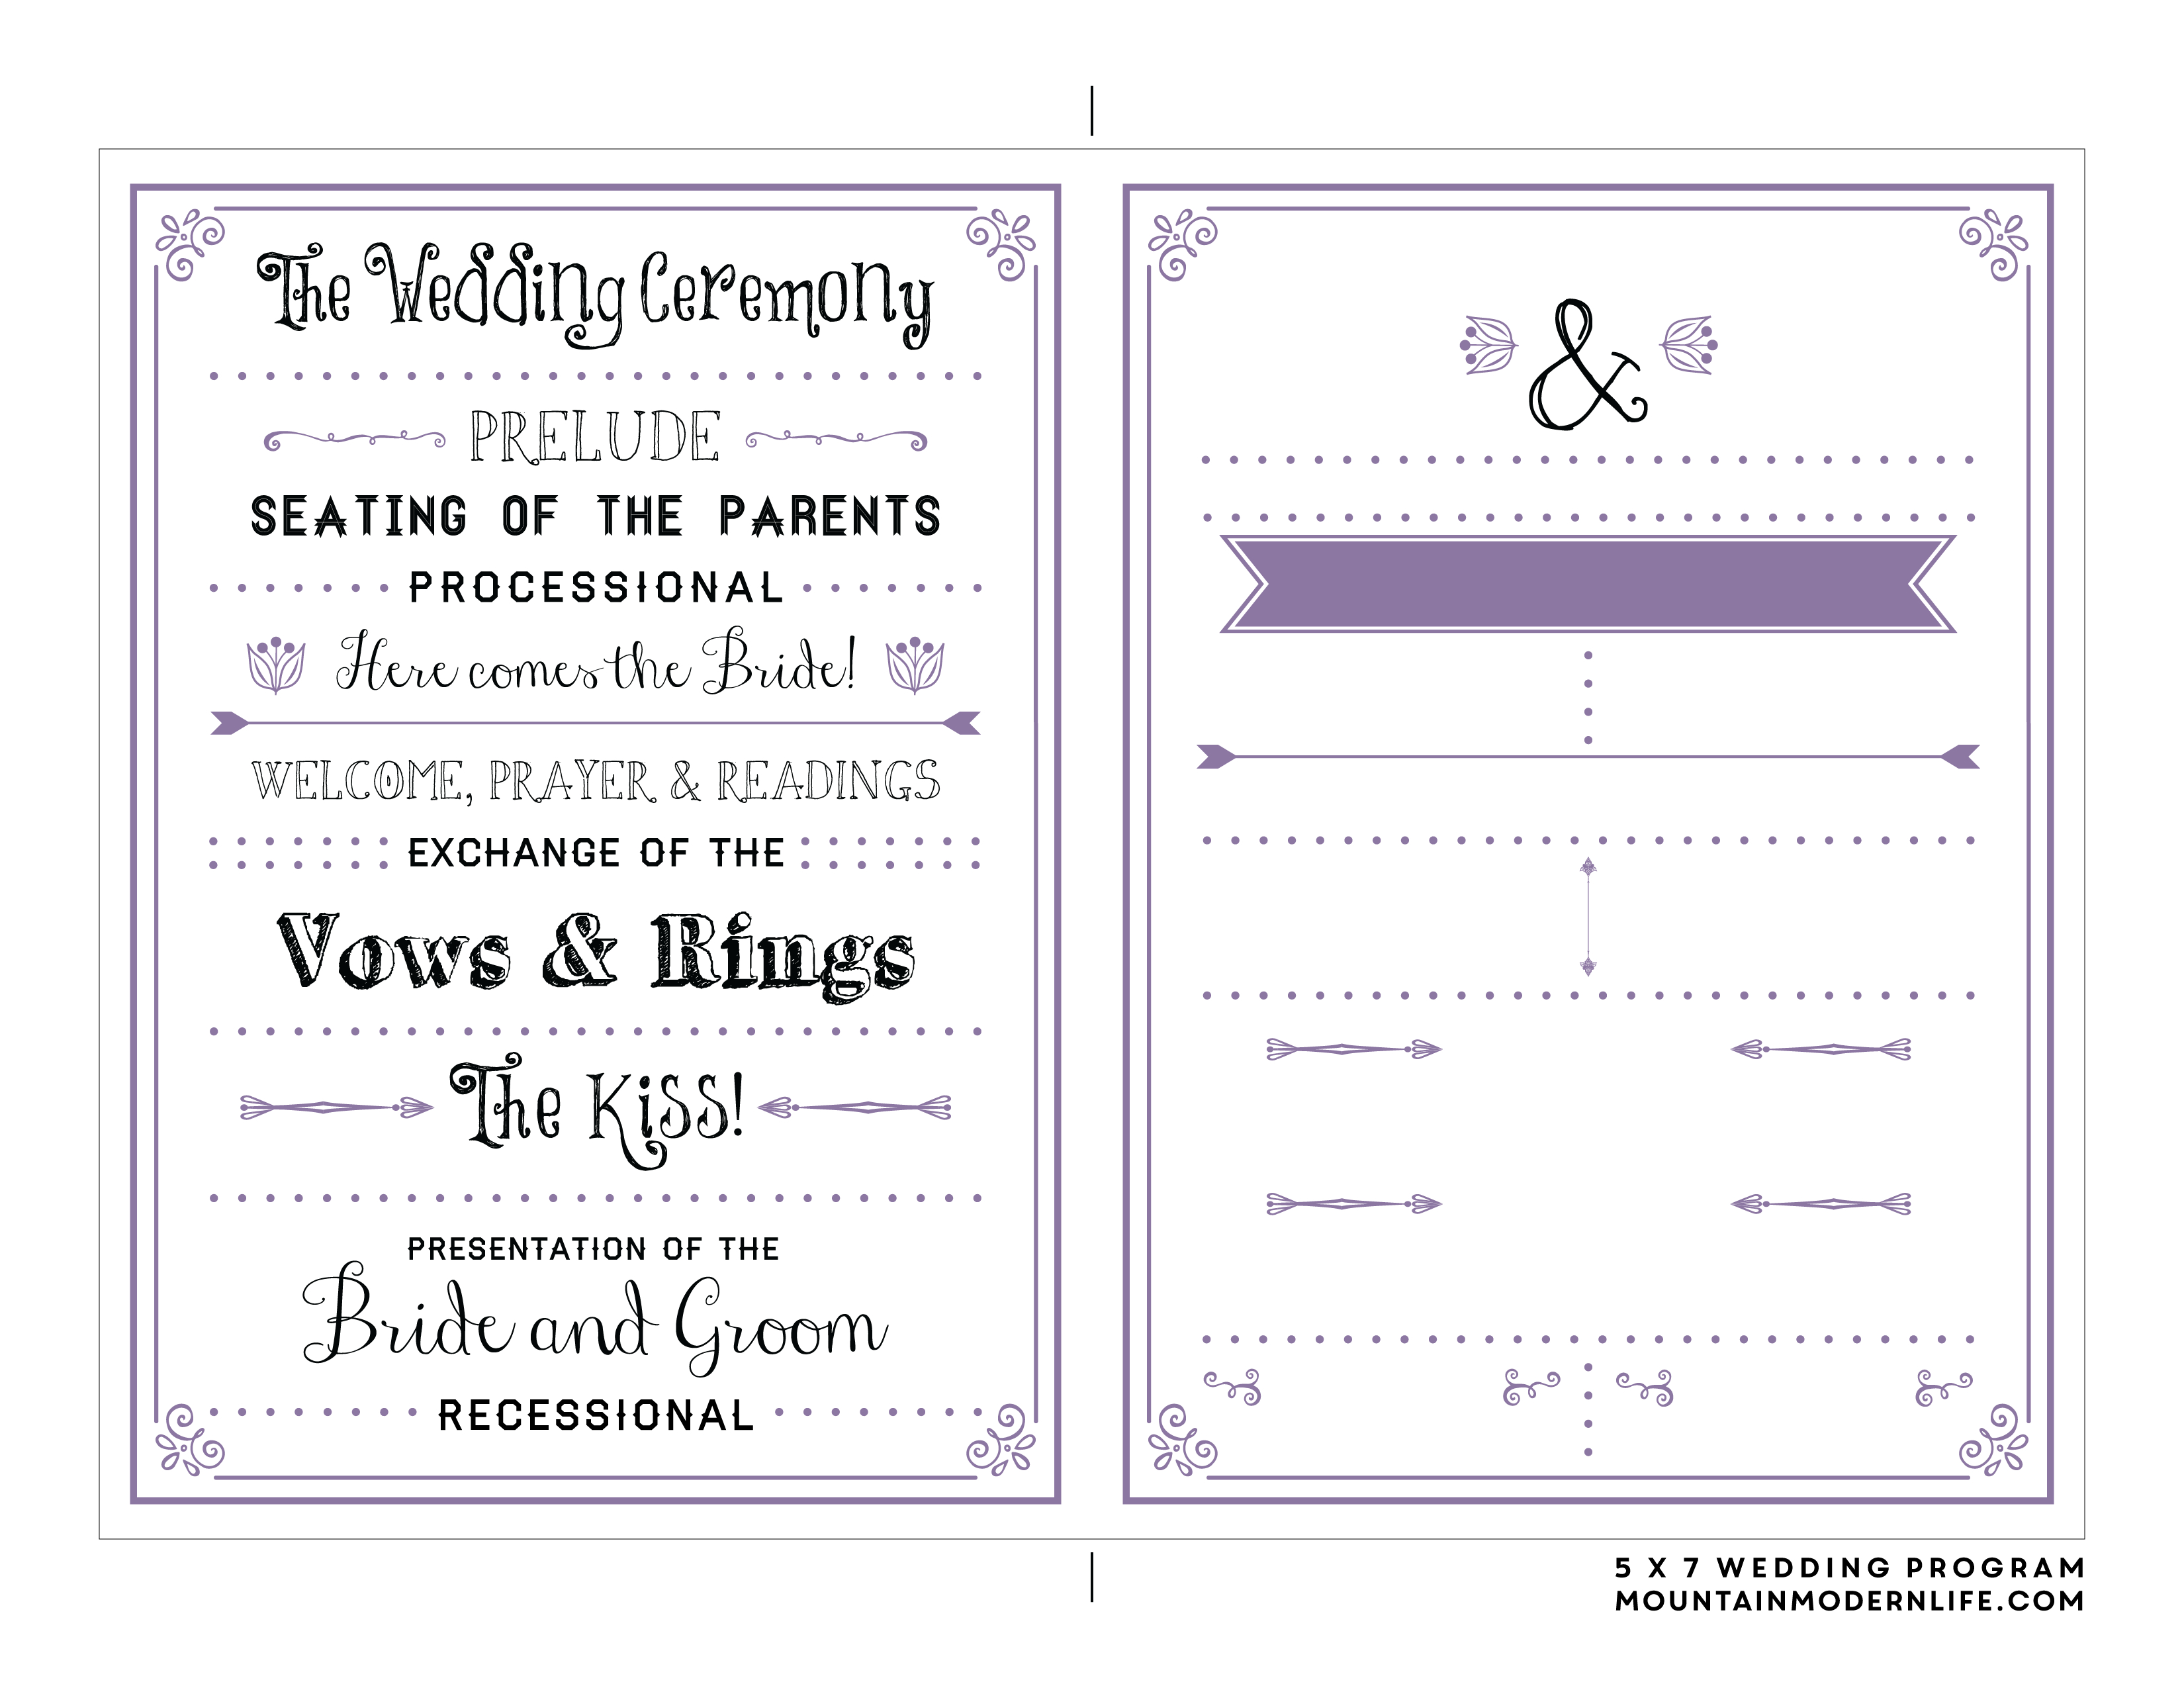 Free Wedding Invitation Templates For Word | Marina Gallery Fine Art - Free Printable Wedding Invitation Templates For Microsoft Word